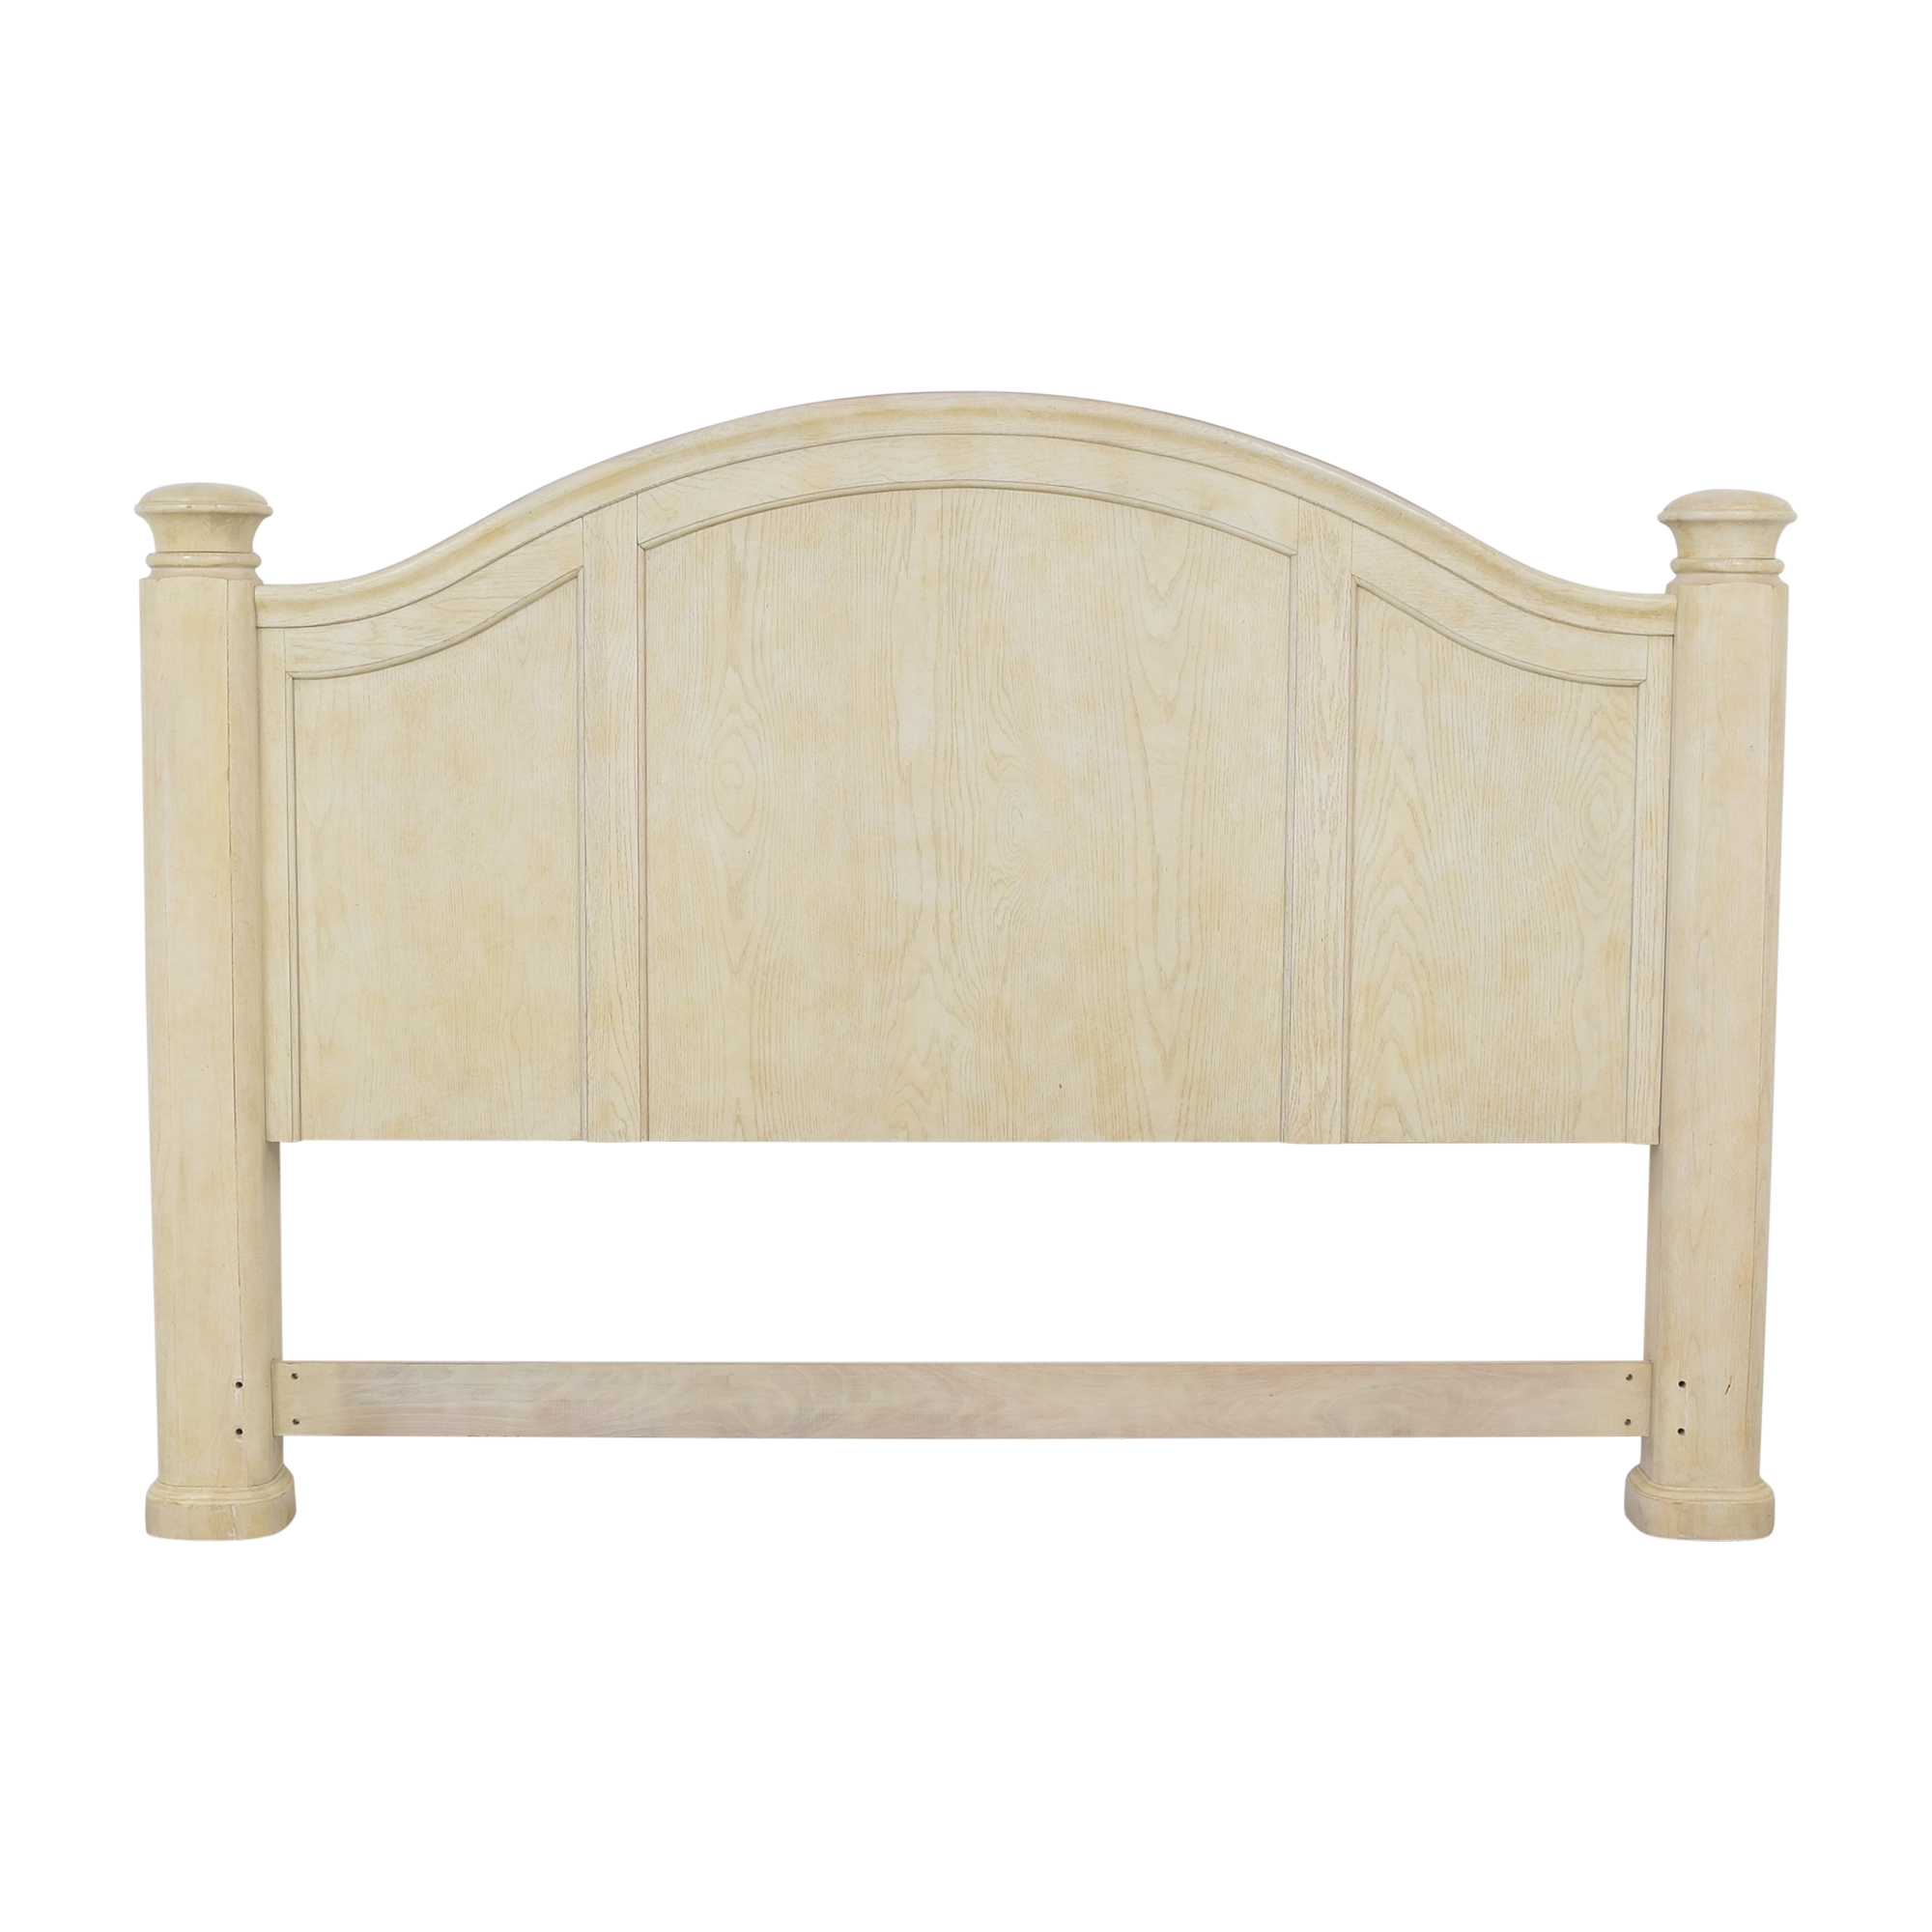 Bernhardt Bernhardt King Headboard on sale